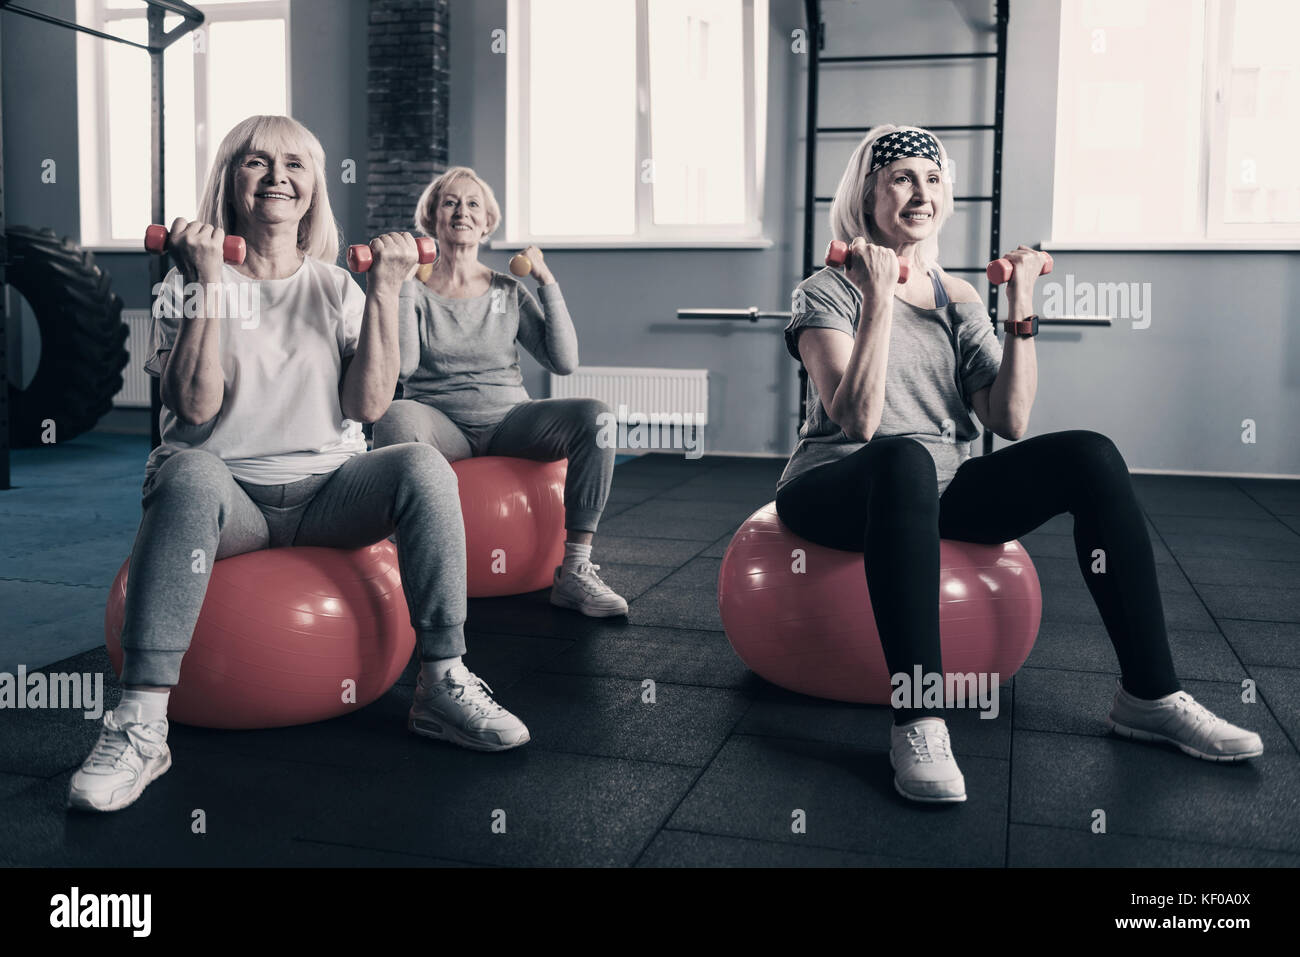 Elderly women working out with dumbbells on exercise balls - Stock Image